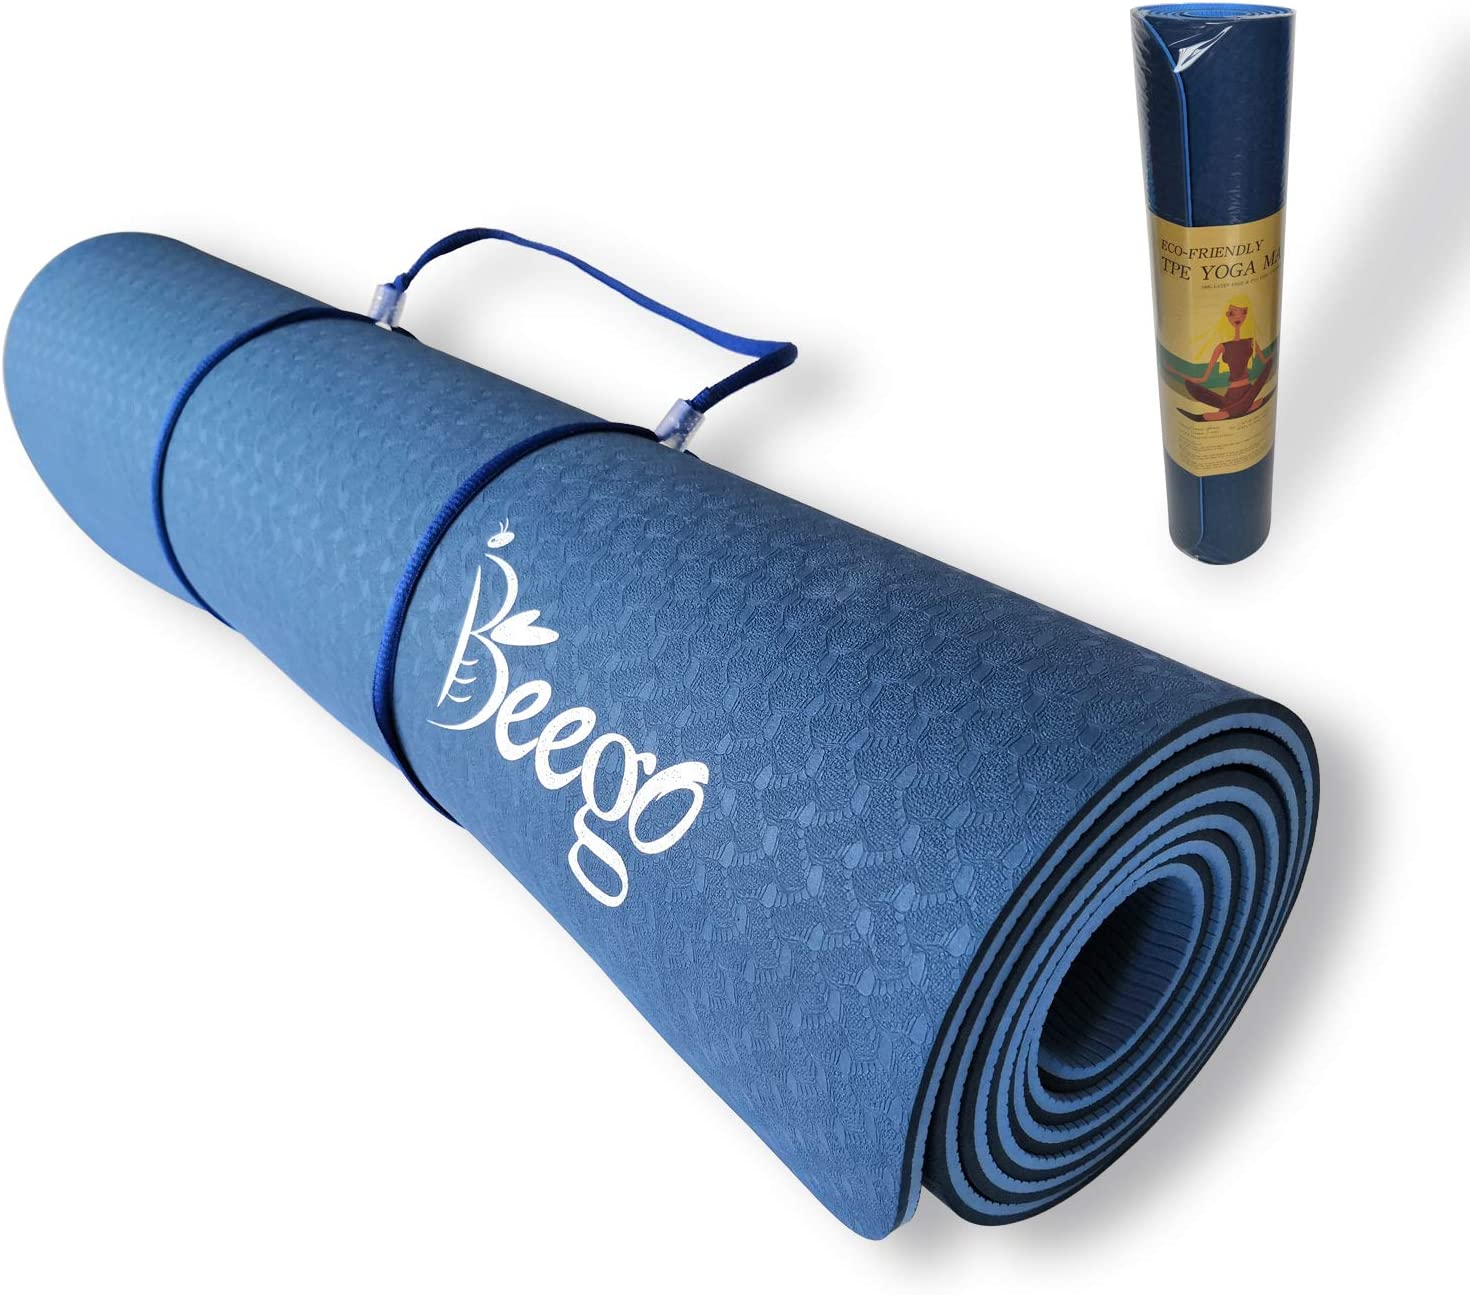 Beego Yoga Mat-Eco Friendly TPE Non Slip Yoga Mat Workout Mat for All Type of Yoga,Pilates and Floor Exercises Classic 1/4 inch Thick Fitness Exercise ...